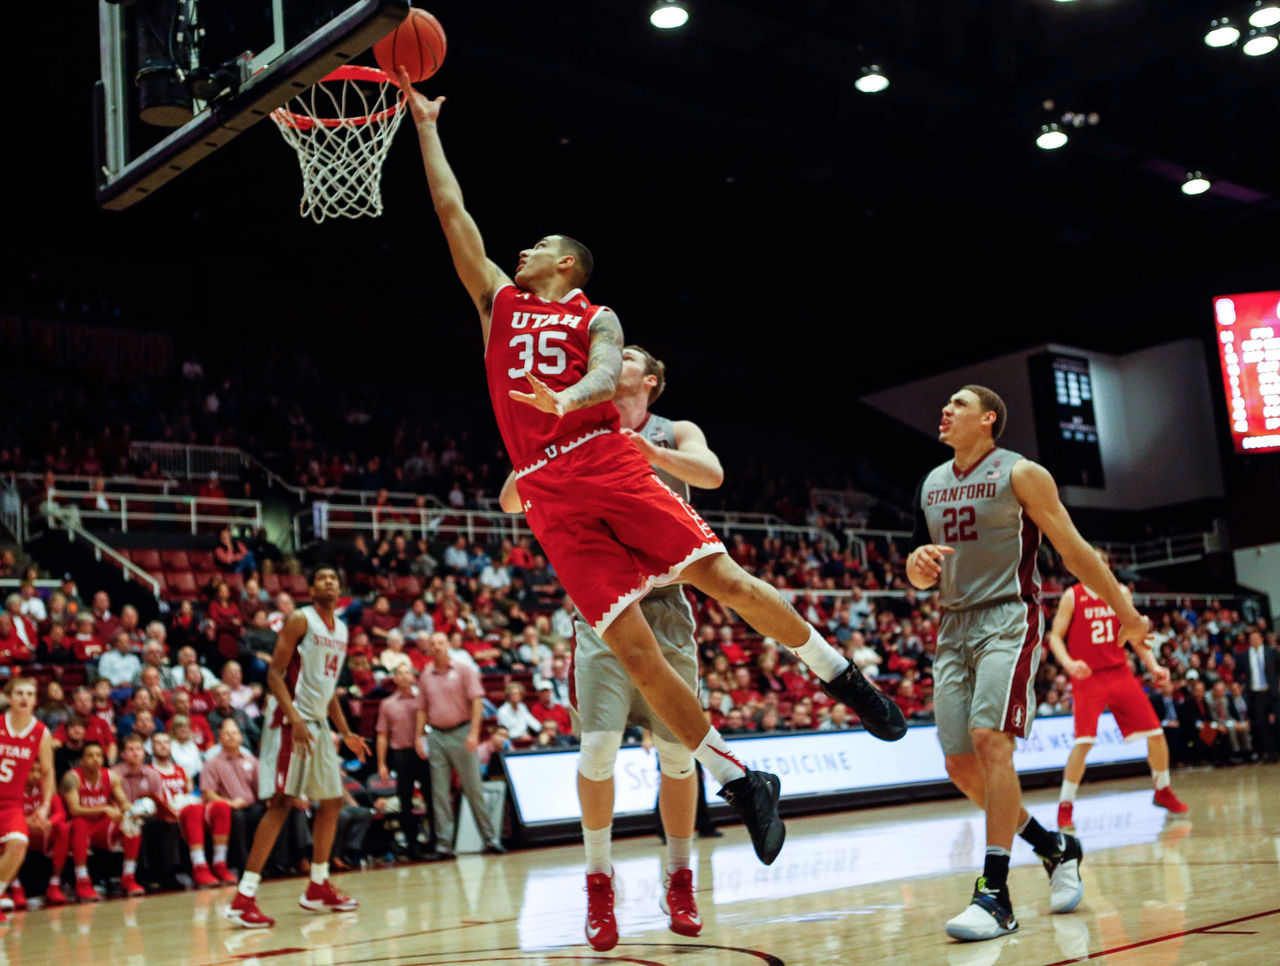 Cropped_2017-02-05t002152z_114121681_nocid_rtrmadp_3_ncaa-basketball-utah-at-stanford